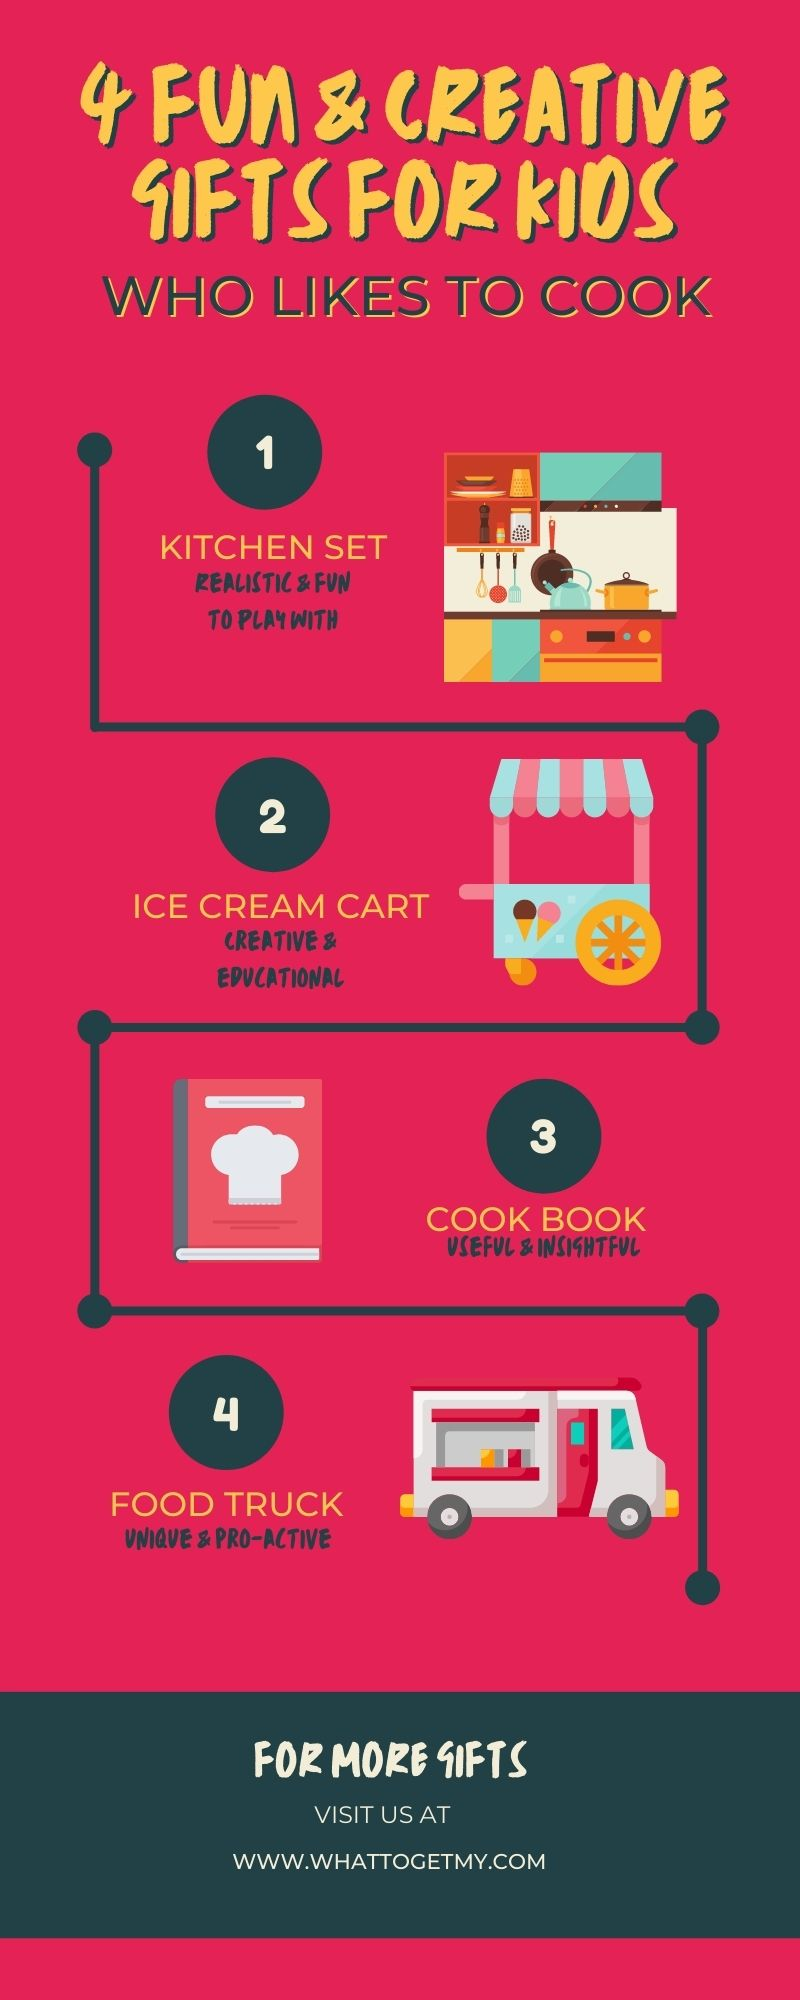 Infographic 4 fun & creative gifts for kids who likes to cook